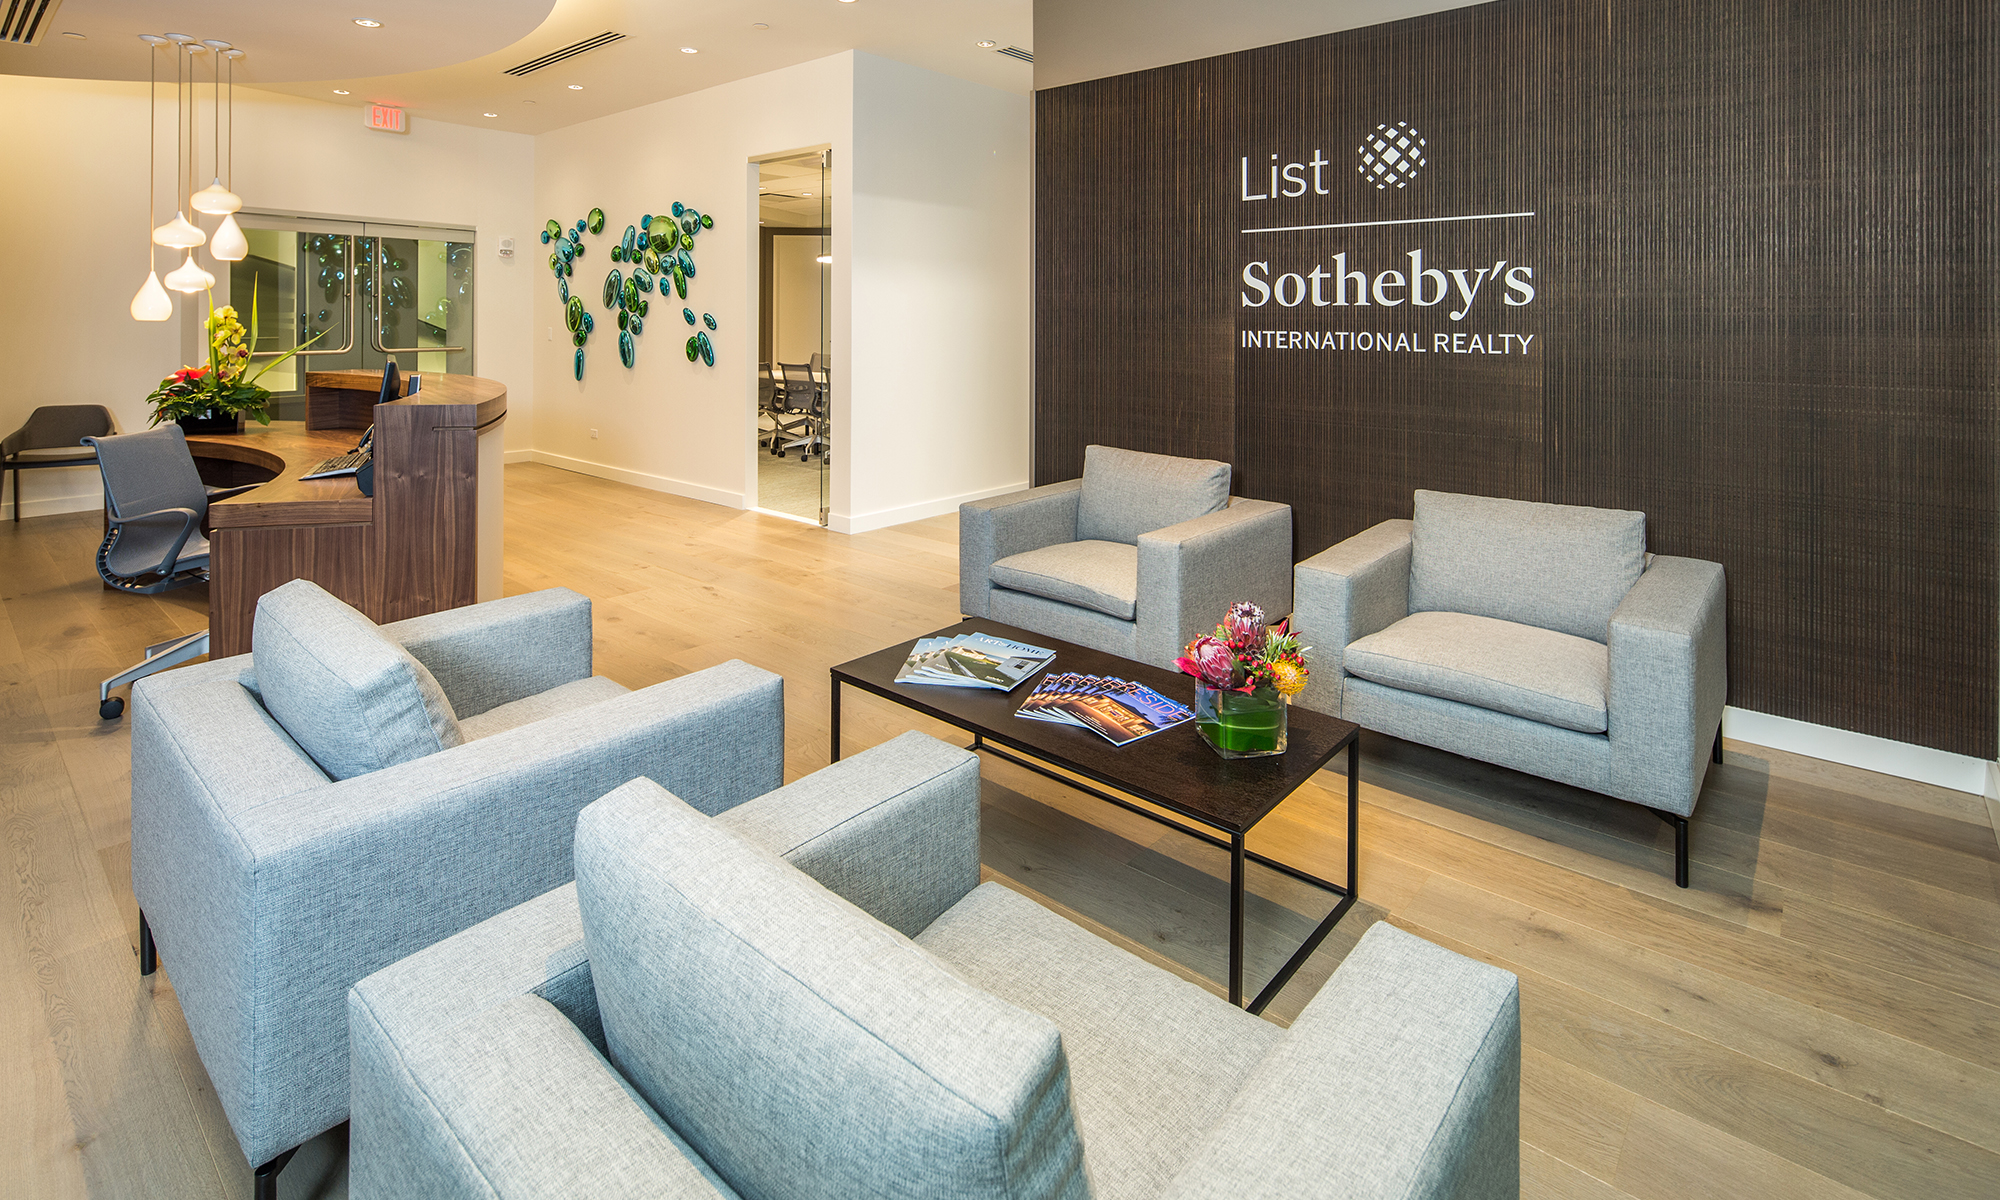 Office List Sotheby's International Realty Photo